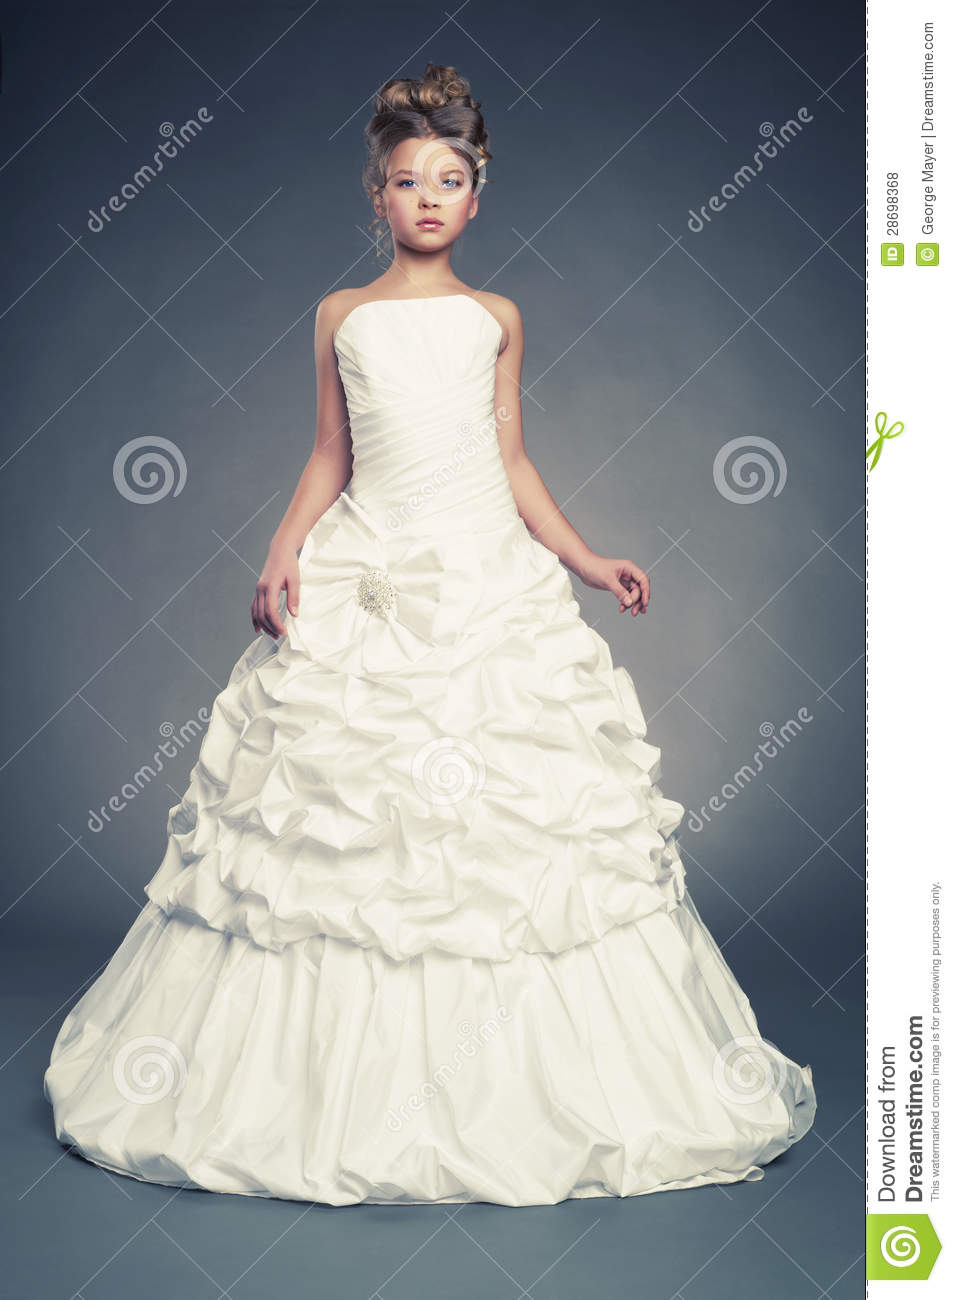 Girl Princess In White Ball Gown Stock Photo - Image of female ...